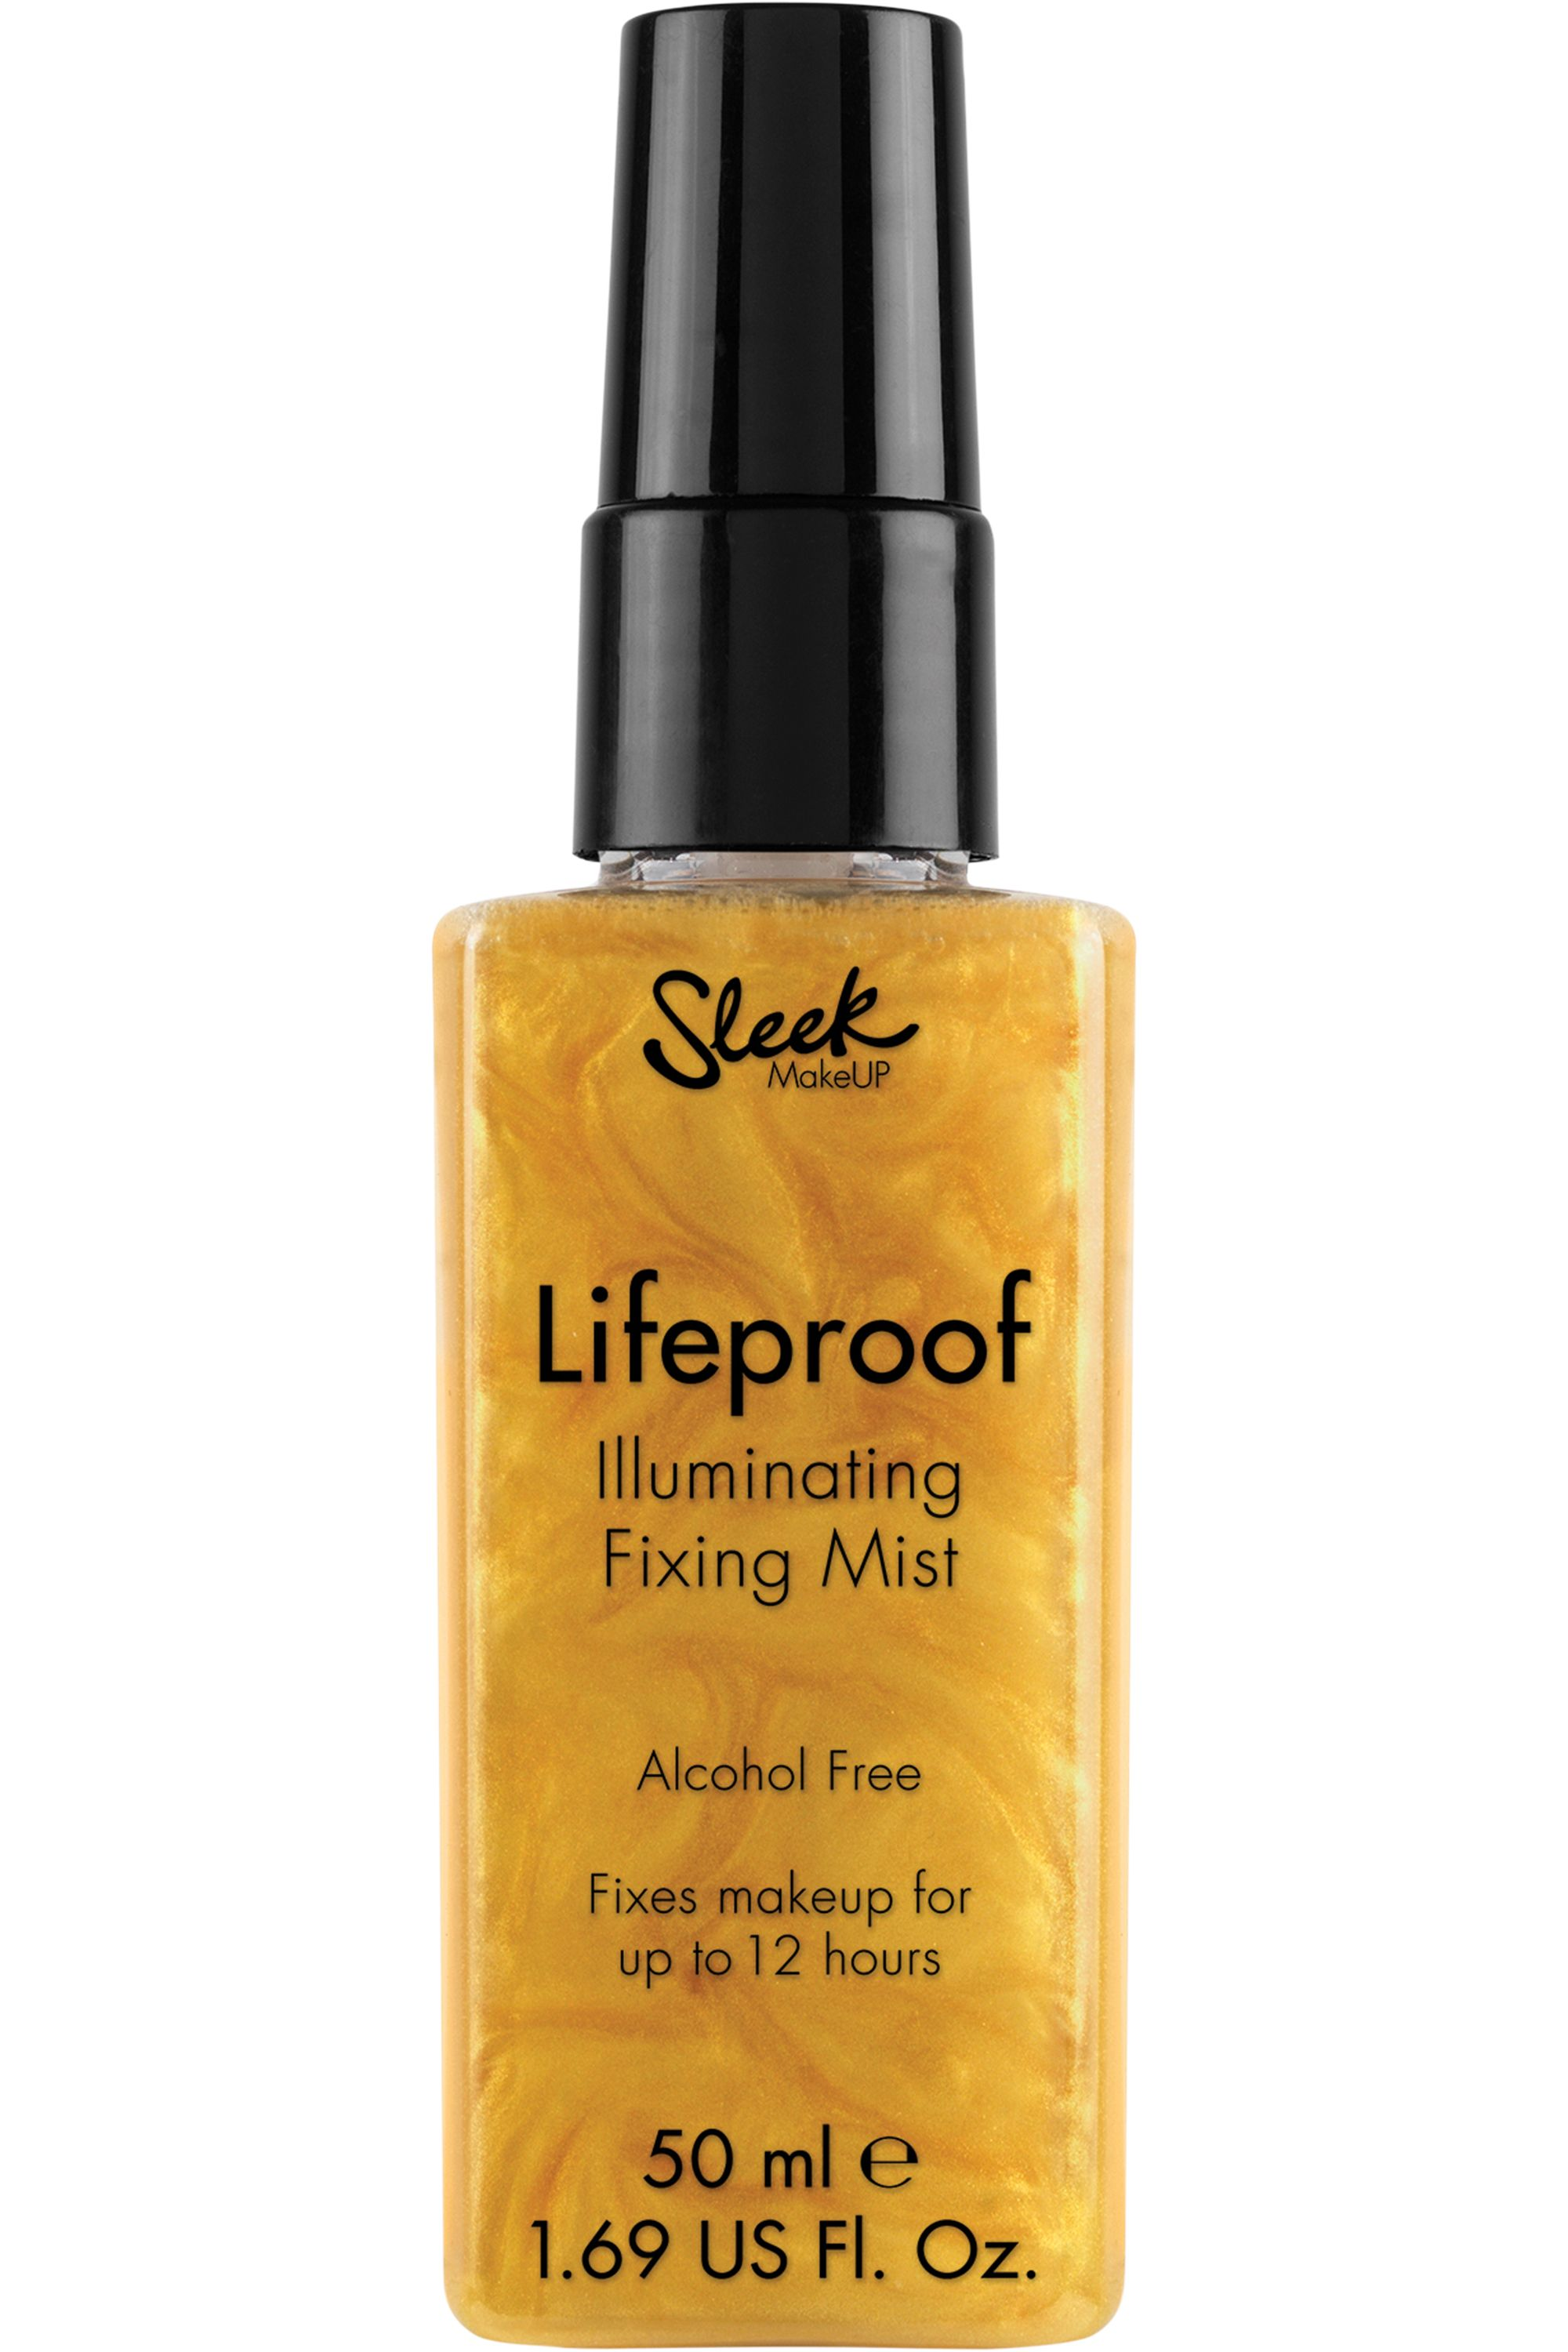 Blissim : Sleek MakeUP - Brume fixatrice illuminatrice Lifeproof Illuminating Fixing Mist - Brume fixatrice illuminatrice Lifeproof Illuminating Fixing Mist